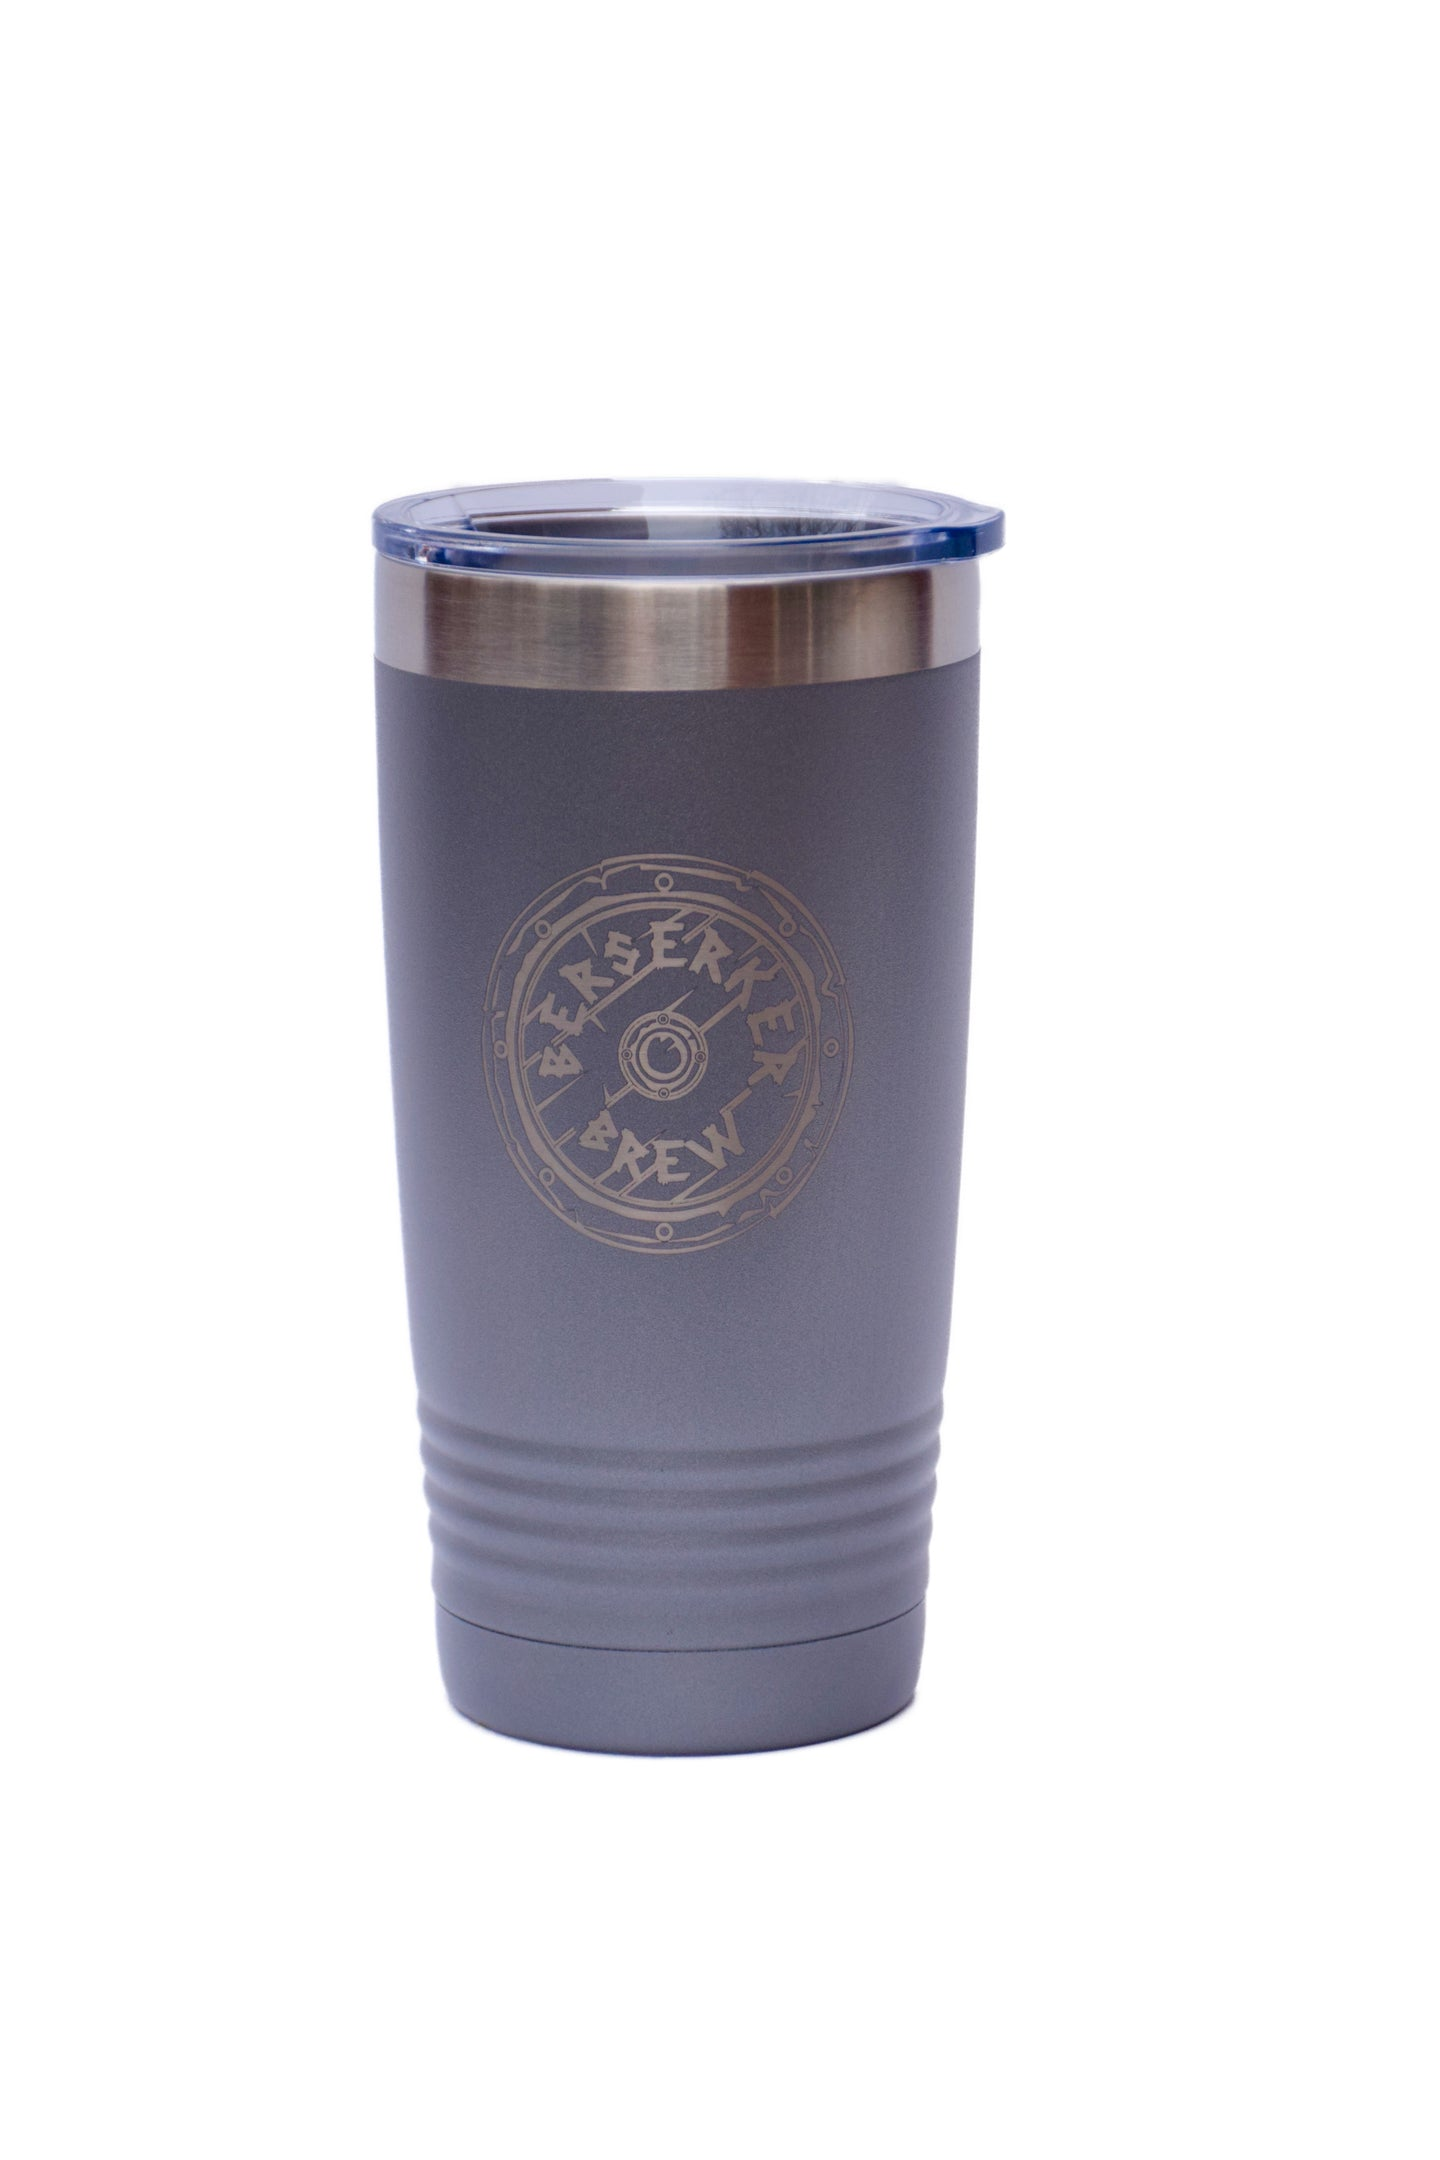 *NEW* Limited Edition 20 oz Tumbler w/ Berserker Brew Shield